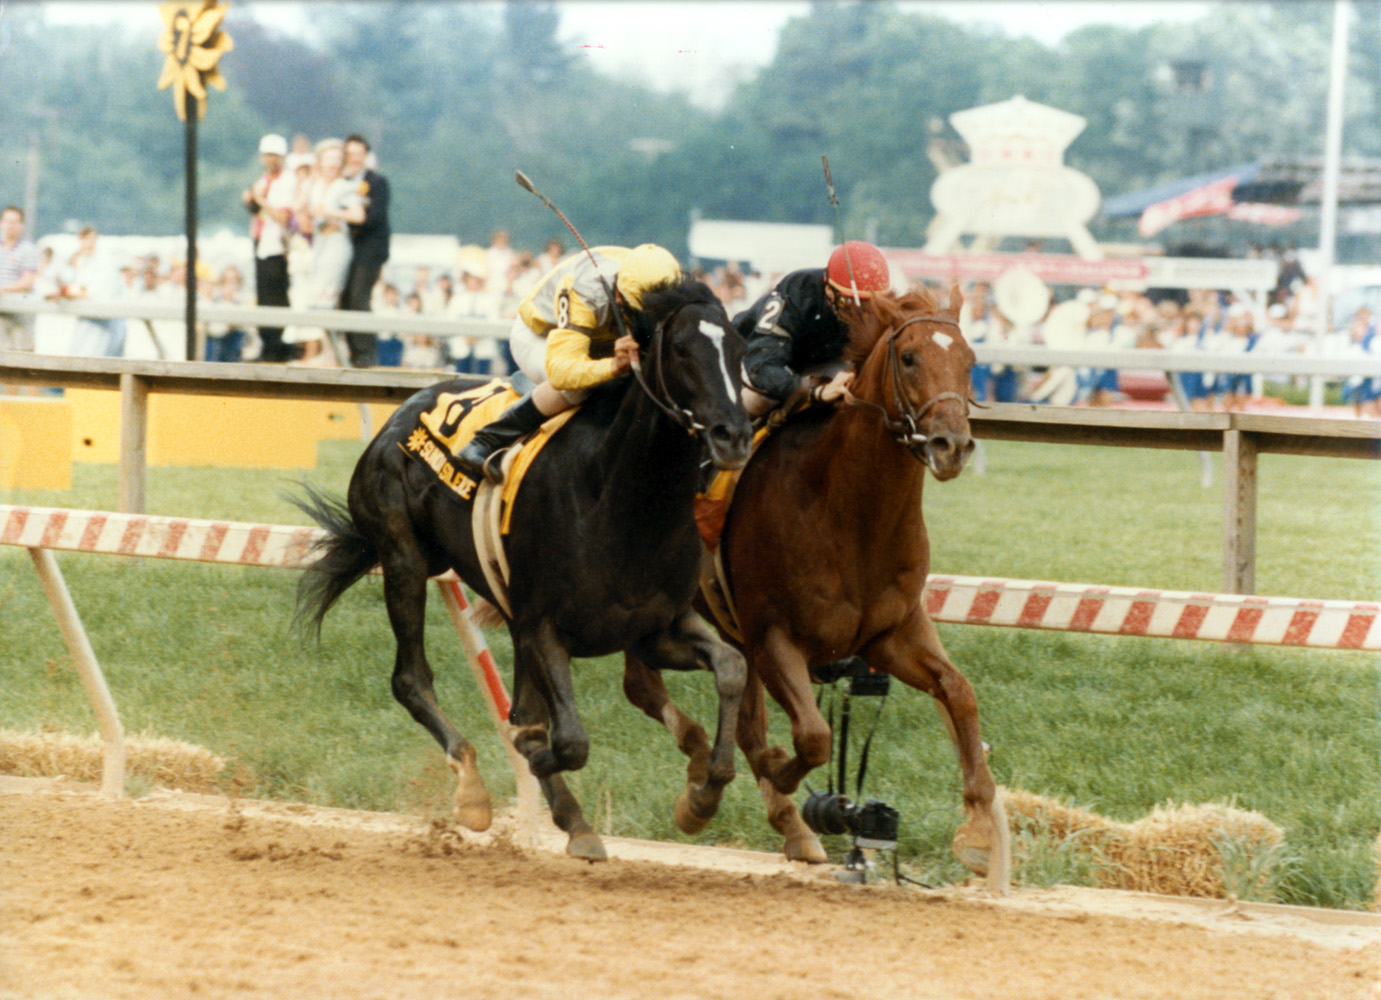 Sunday Silence (Patrick Valenzuela up) dueling fellow Hall of Famer Easy Goer (Pat Day up) down the stretch in the 1989 Preakness (Skip Dickstein/Museum Collection)